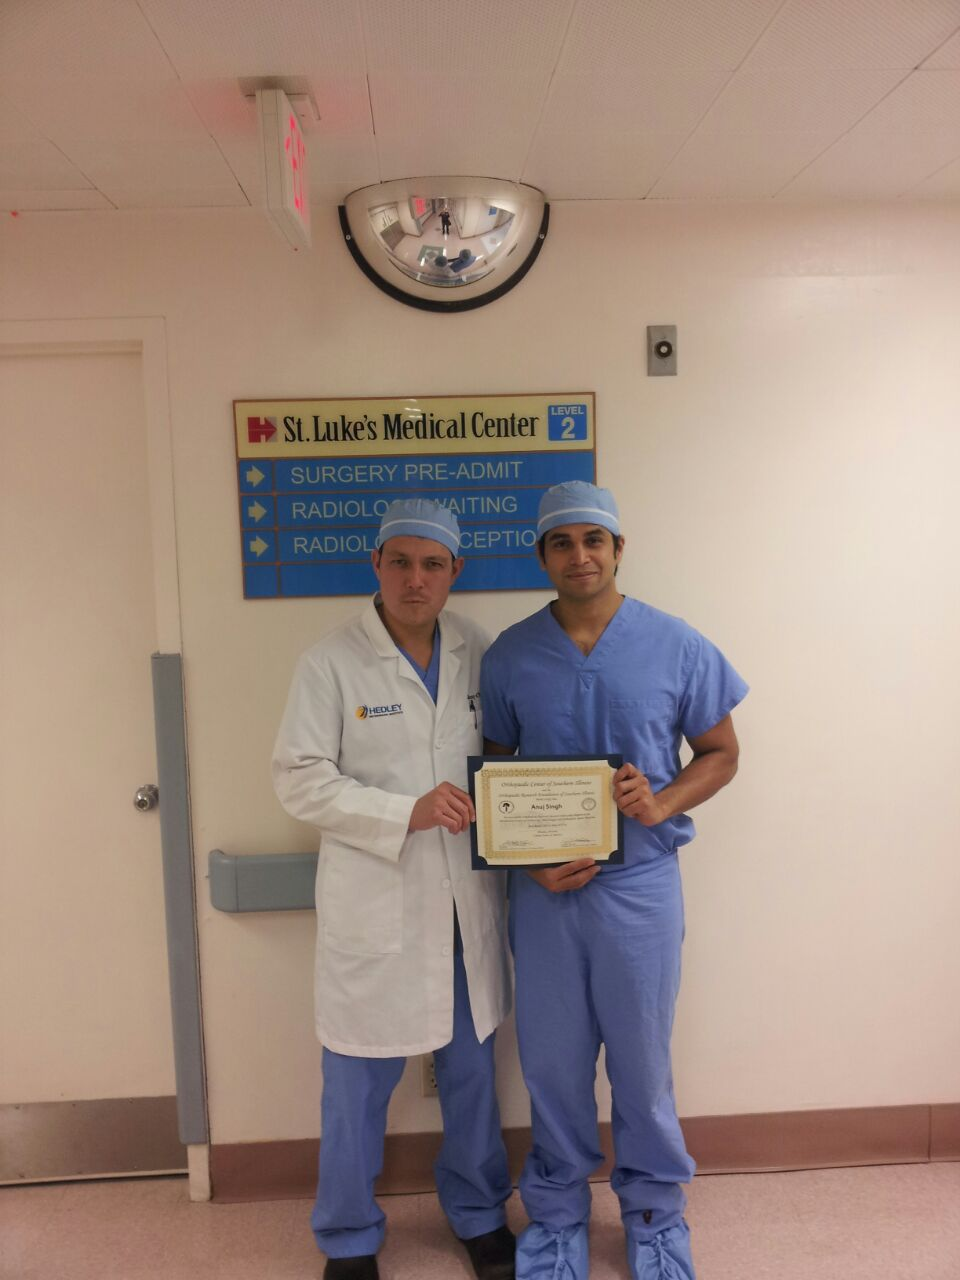 Dr. Anuj Singh has received training in advanced joint replacement surgeries at Headly Orthopedic Institute in U.S.A.|Hip & Knee Replacement Centre|Kandivali West,Mumbai